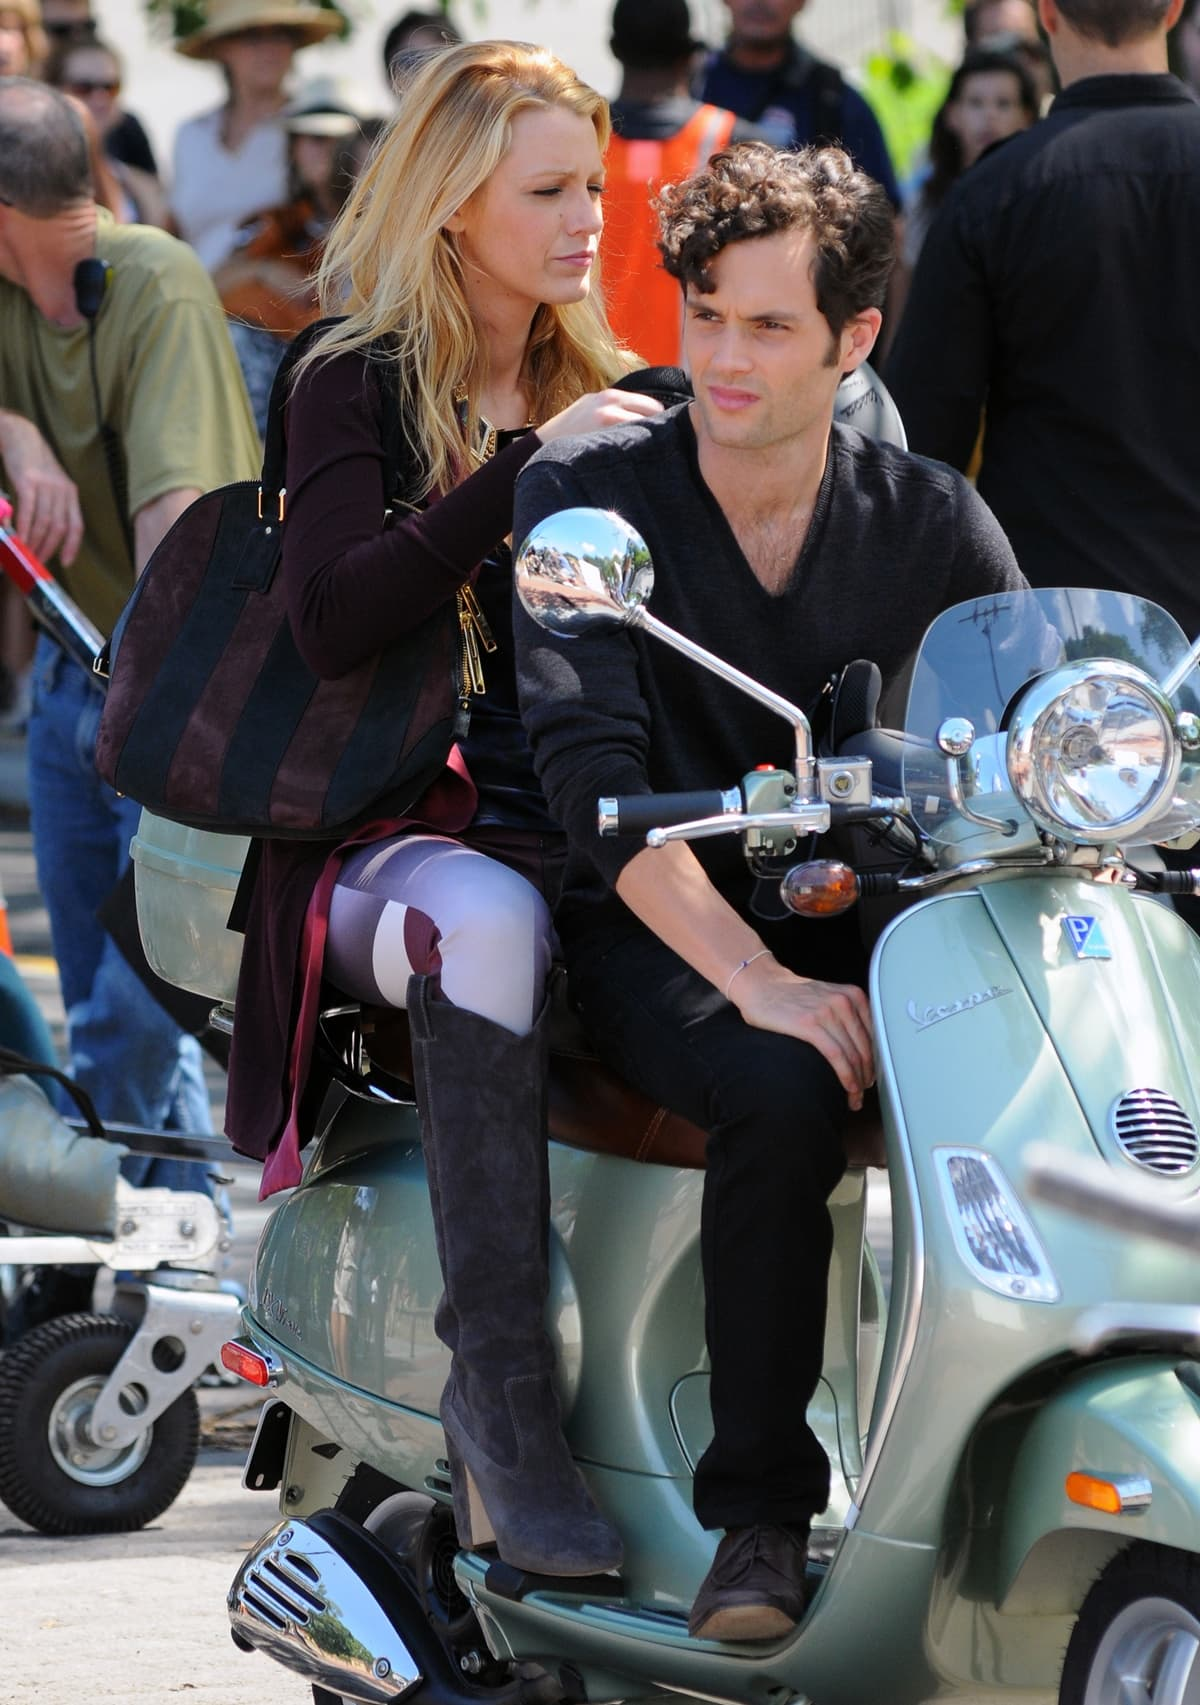 Blake Lively and Penn Badgley ride a Vespa scooter on the set of Gossip Girl in Central Park in New York City